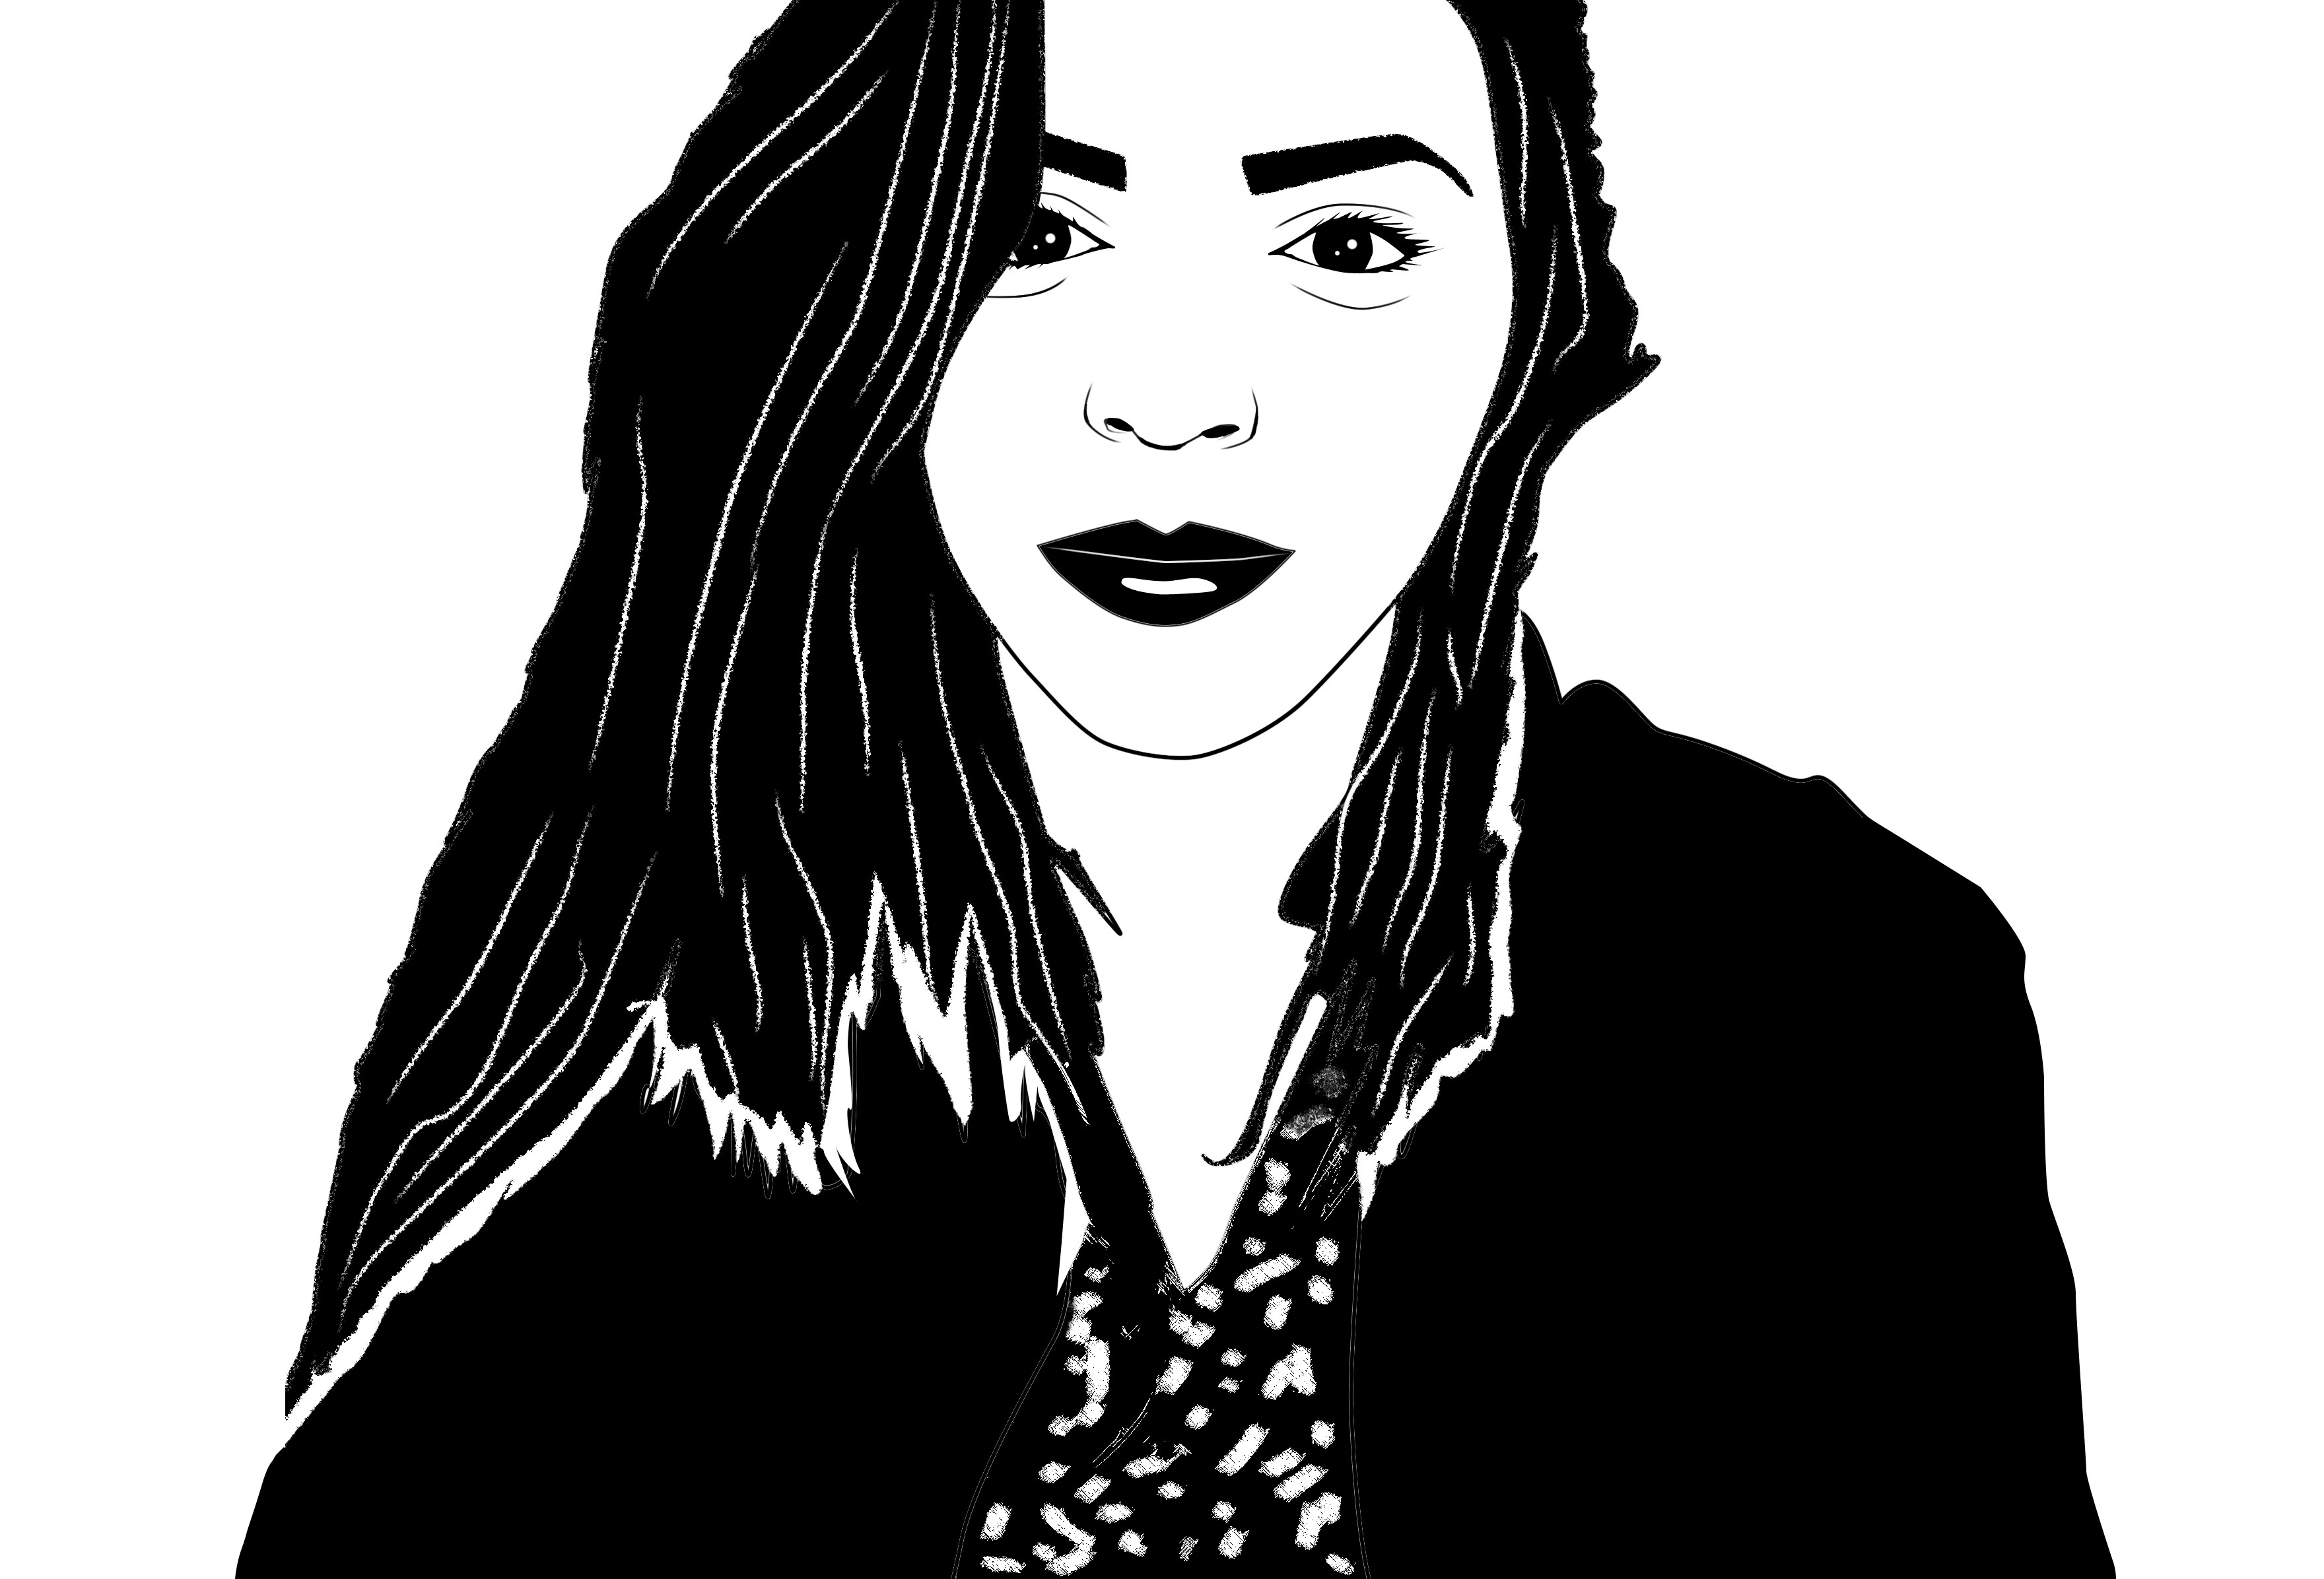 DRAW BLACK AND WHITE PORTRAIT OF YOU